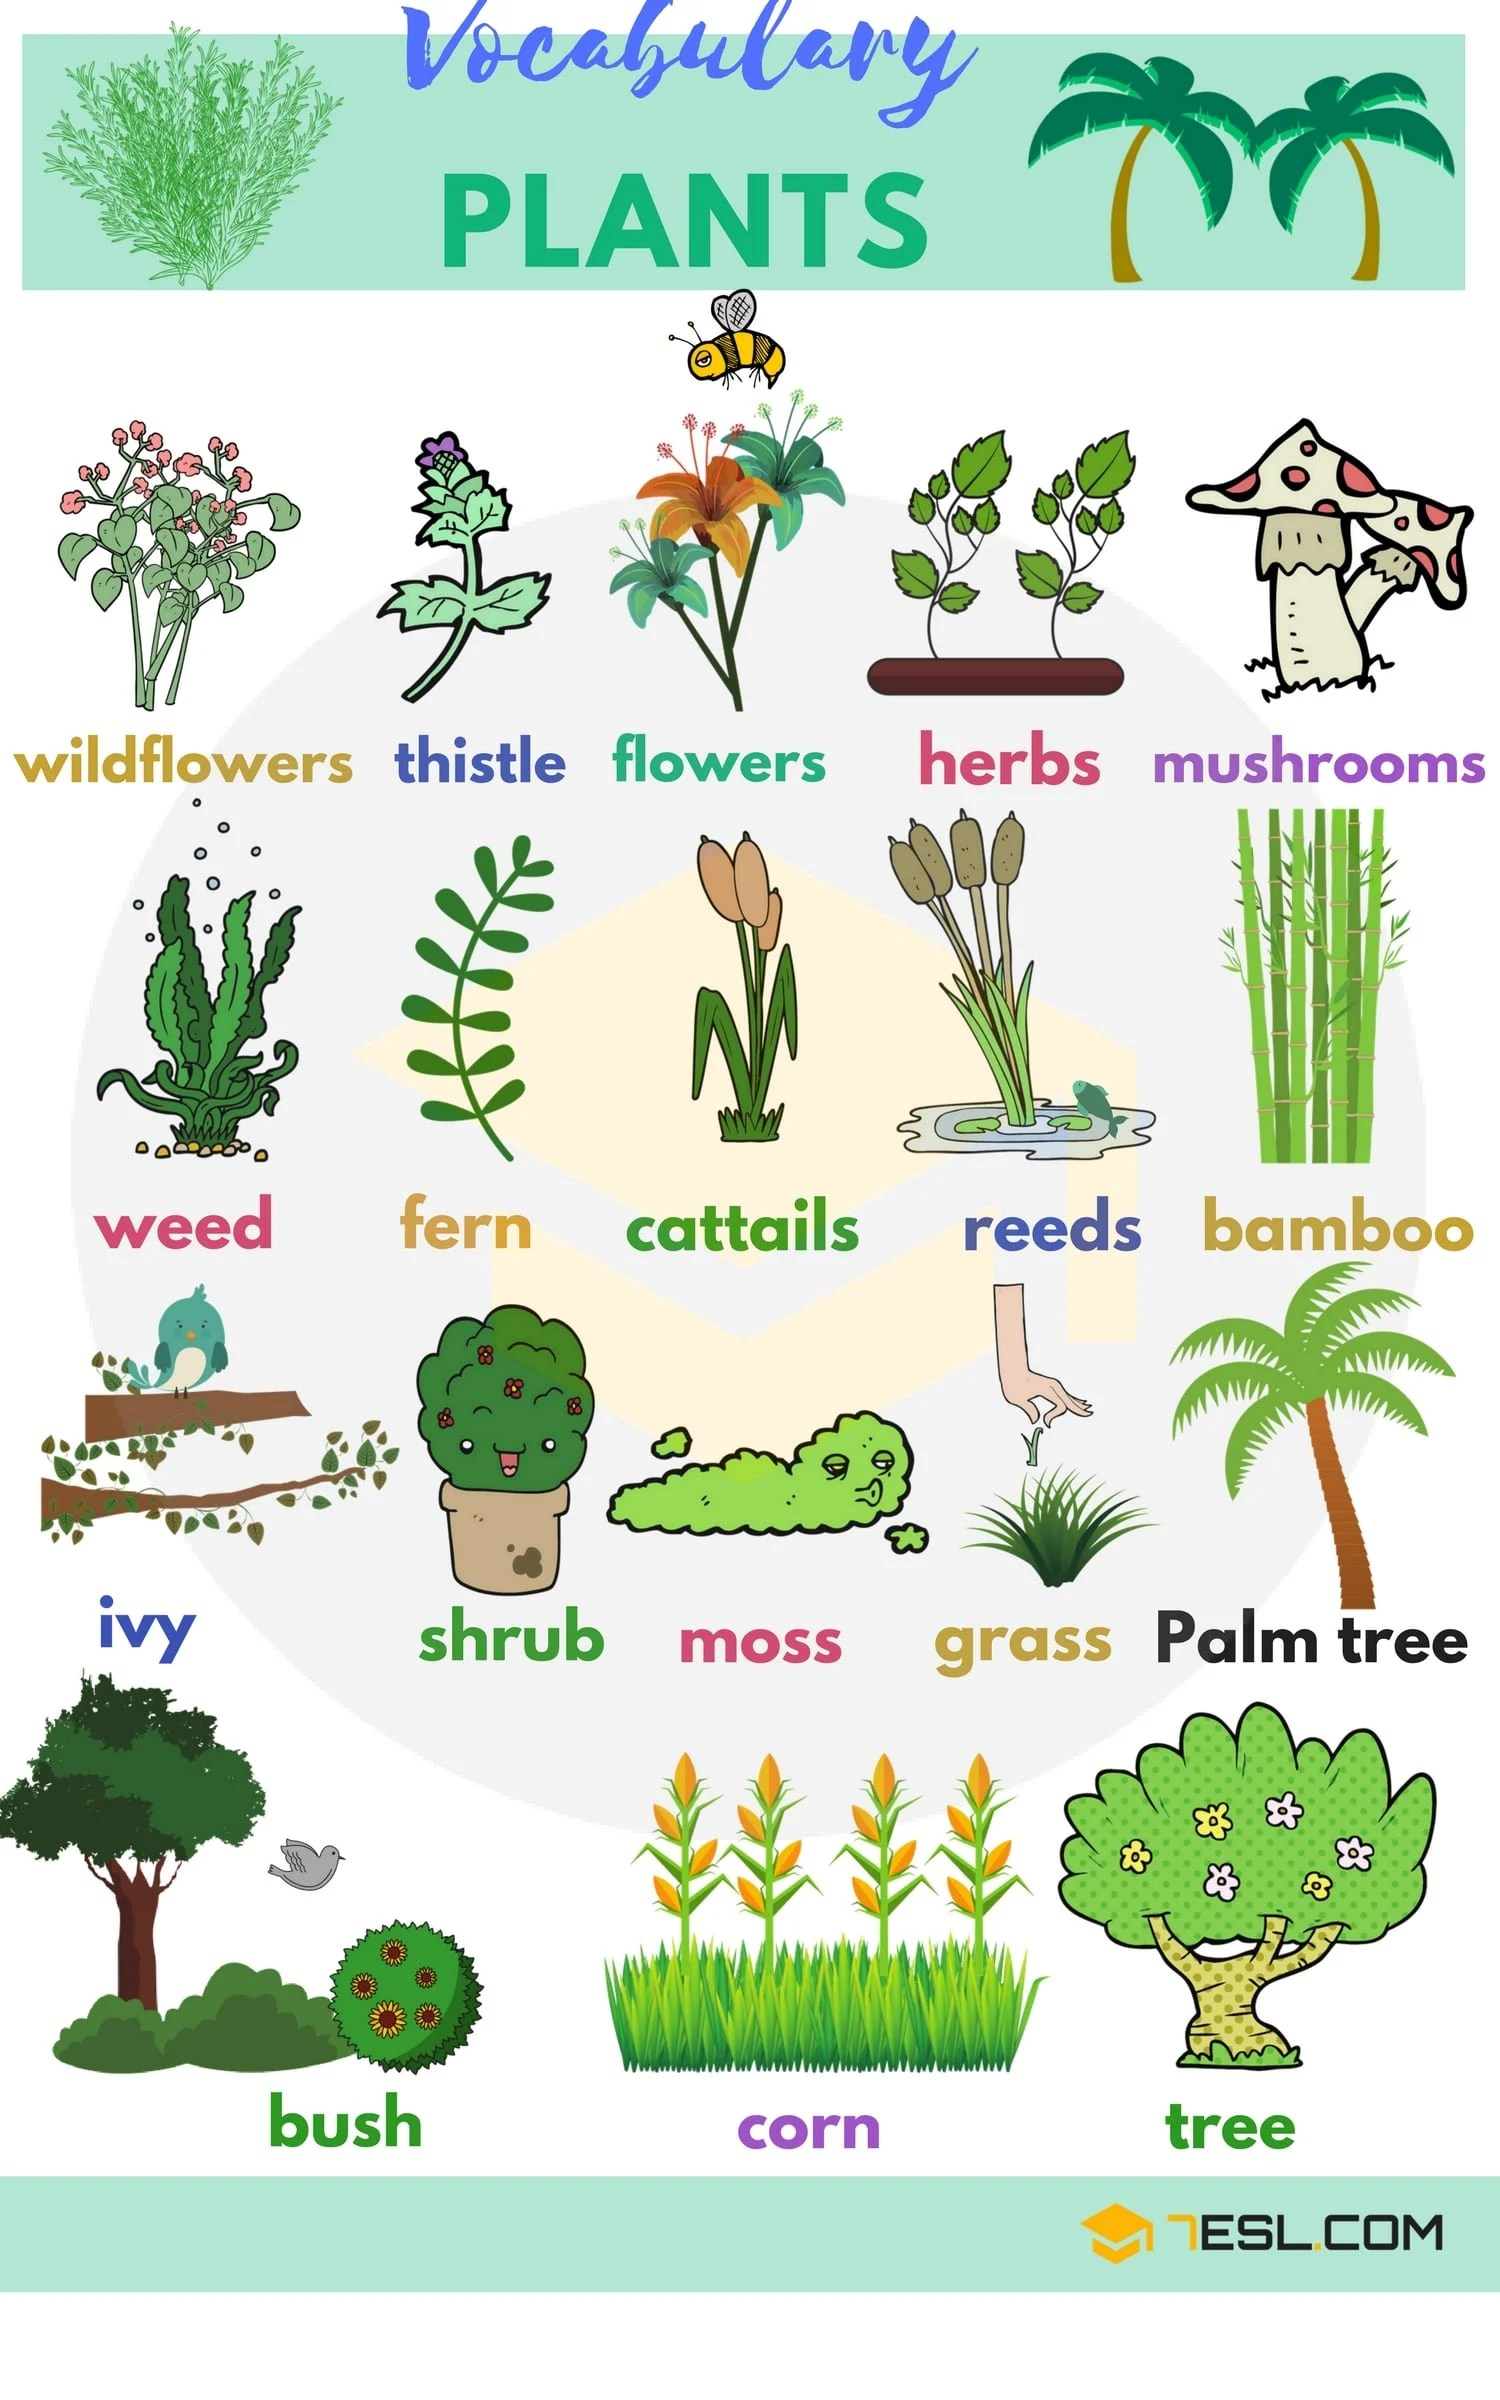 English Vocabulary For Plants